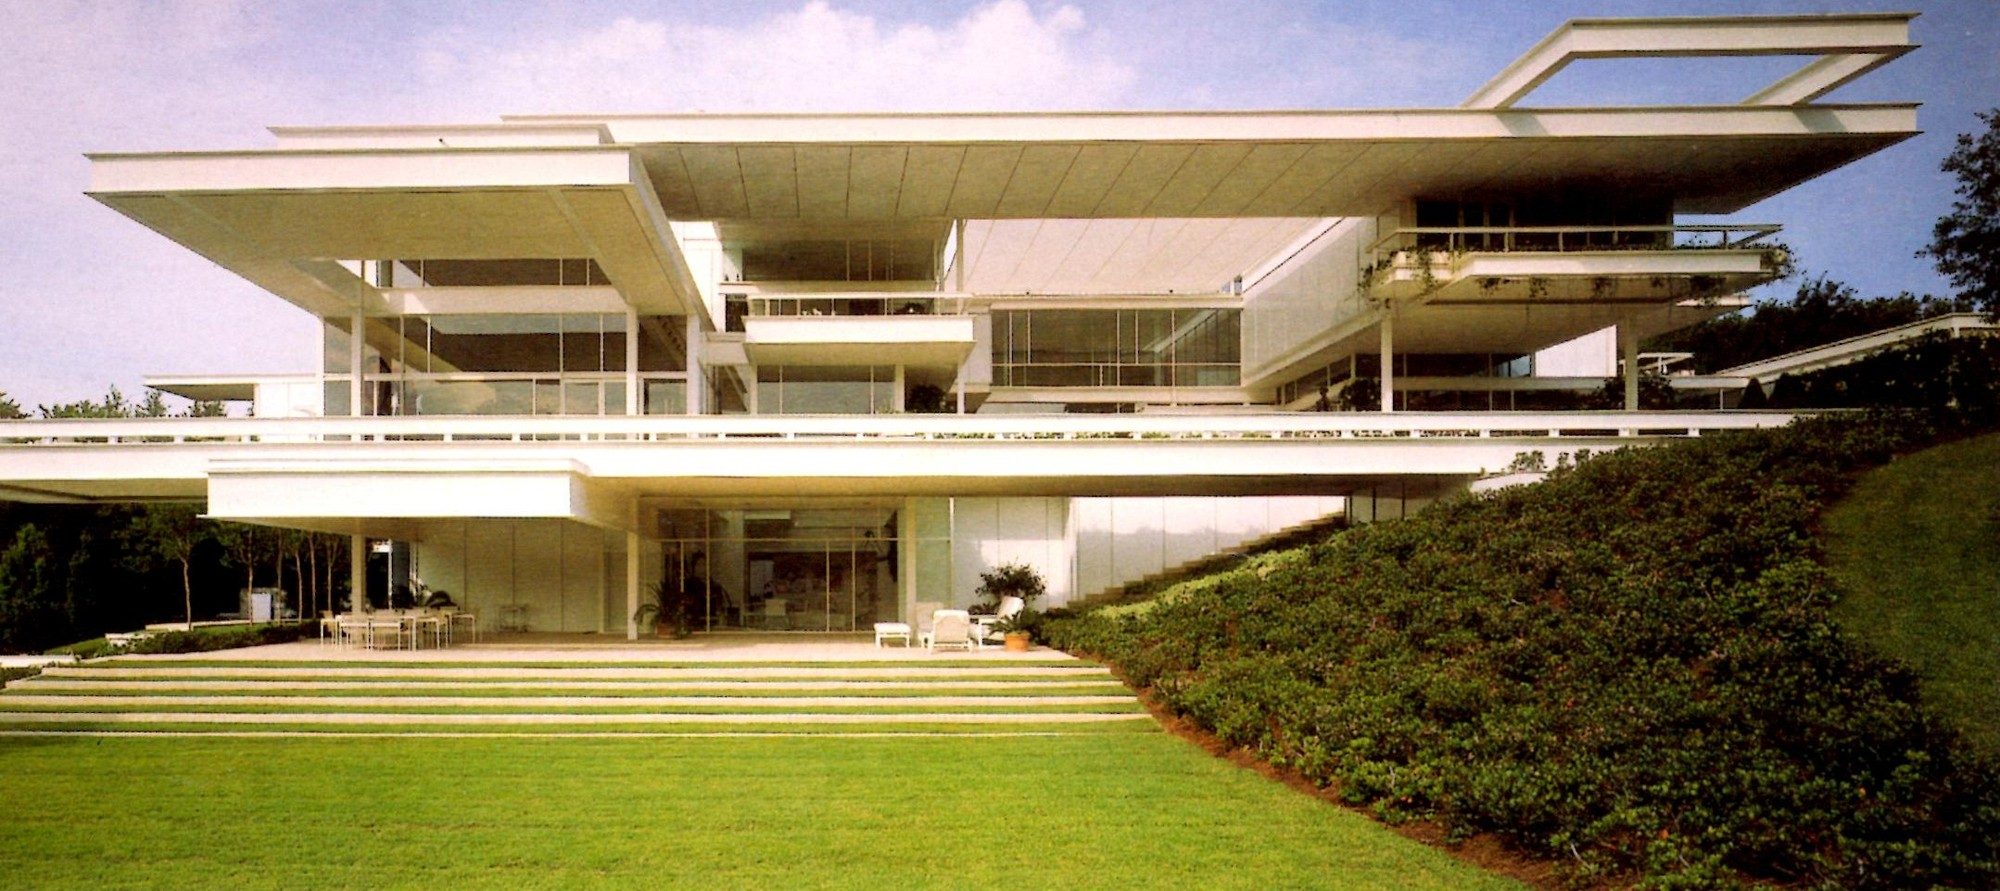 Ad classics bass residence paul rudolph archdaily for House building website